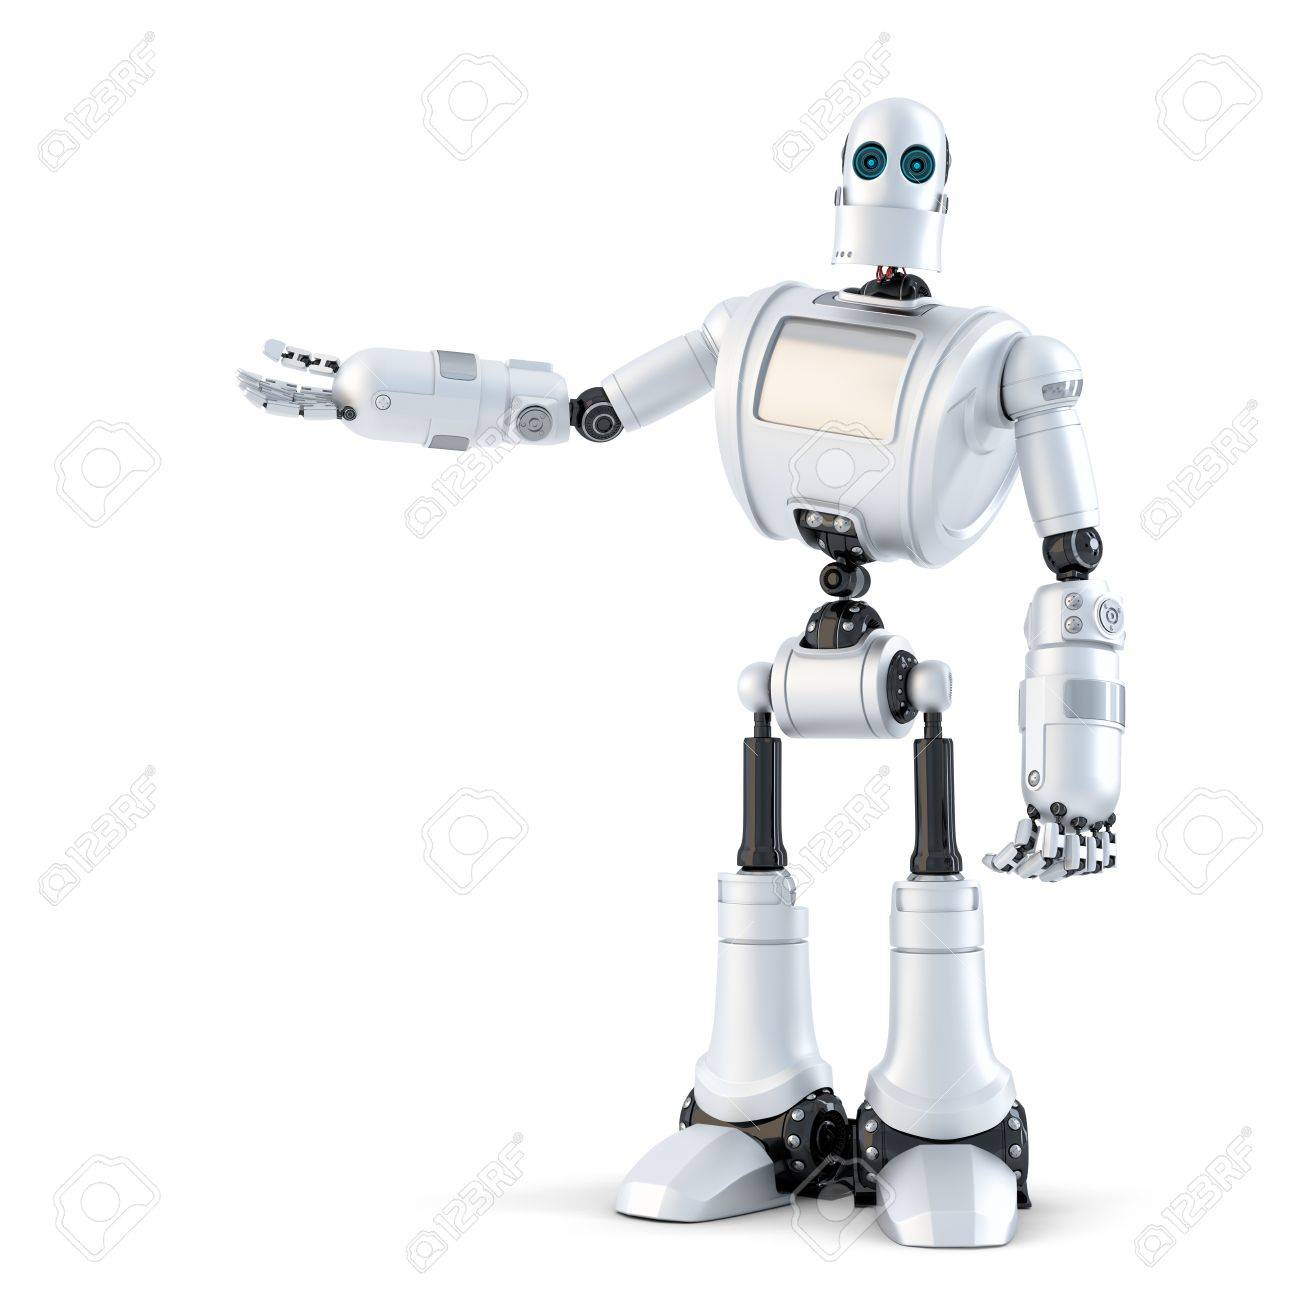 Robot presenting an invisible object. Isolated over white. Standard-Bild - 40577669